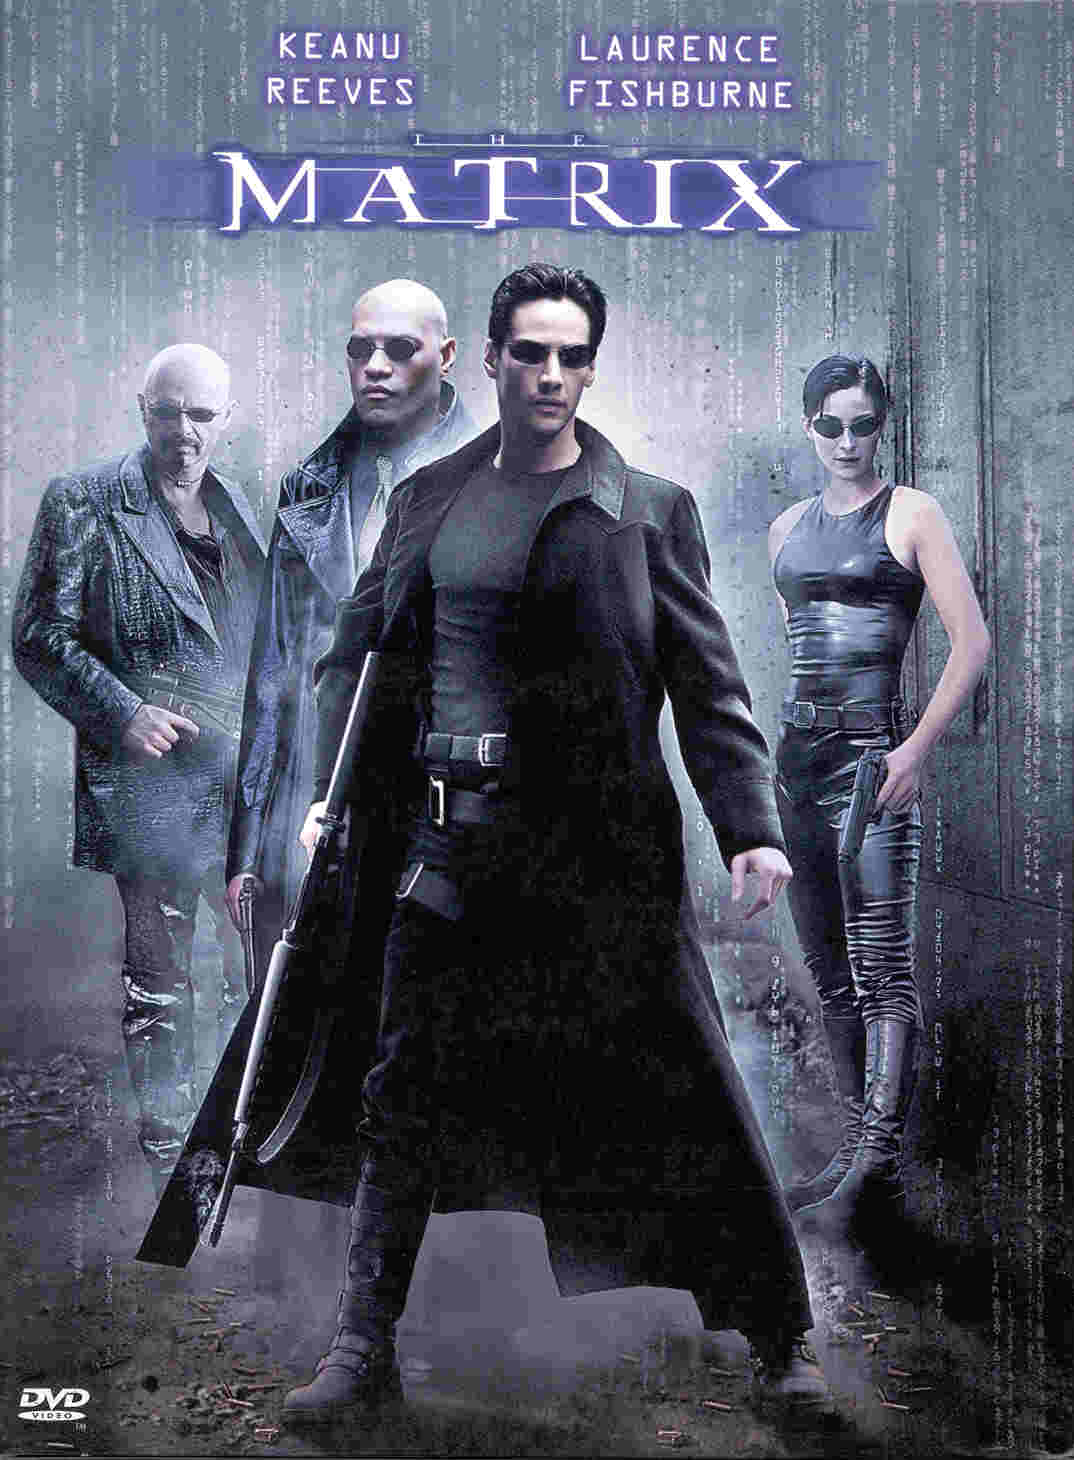 the matrix and glamorized violence My teacher says the media glamorizes violence but i cannot seem to find how the media are glamorizing the violence i need some examples and some descriptions of how the media is portraying this glamorization.